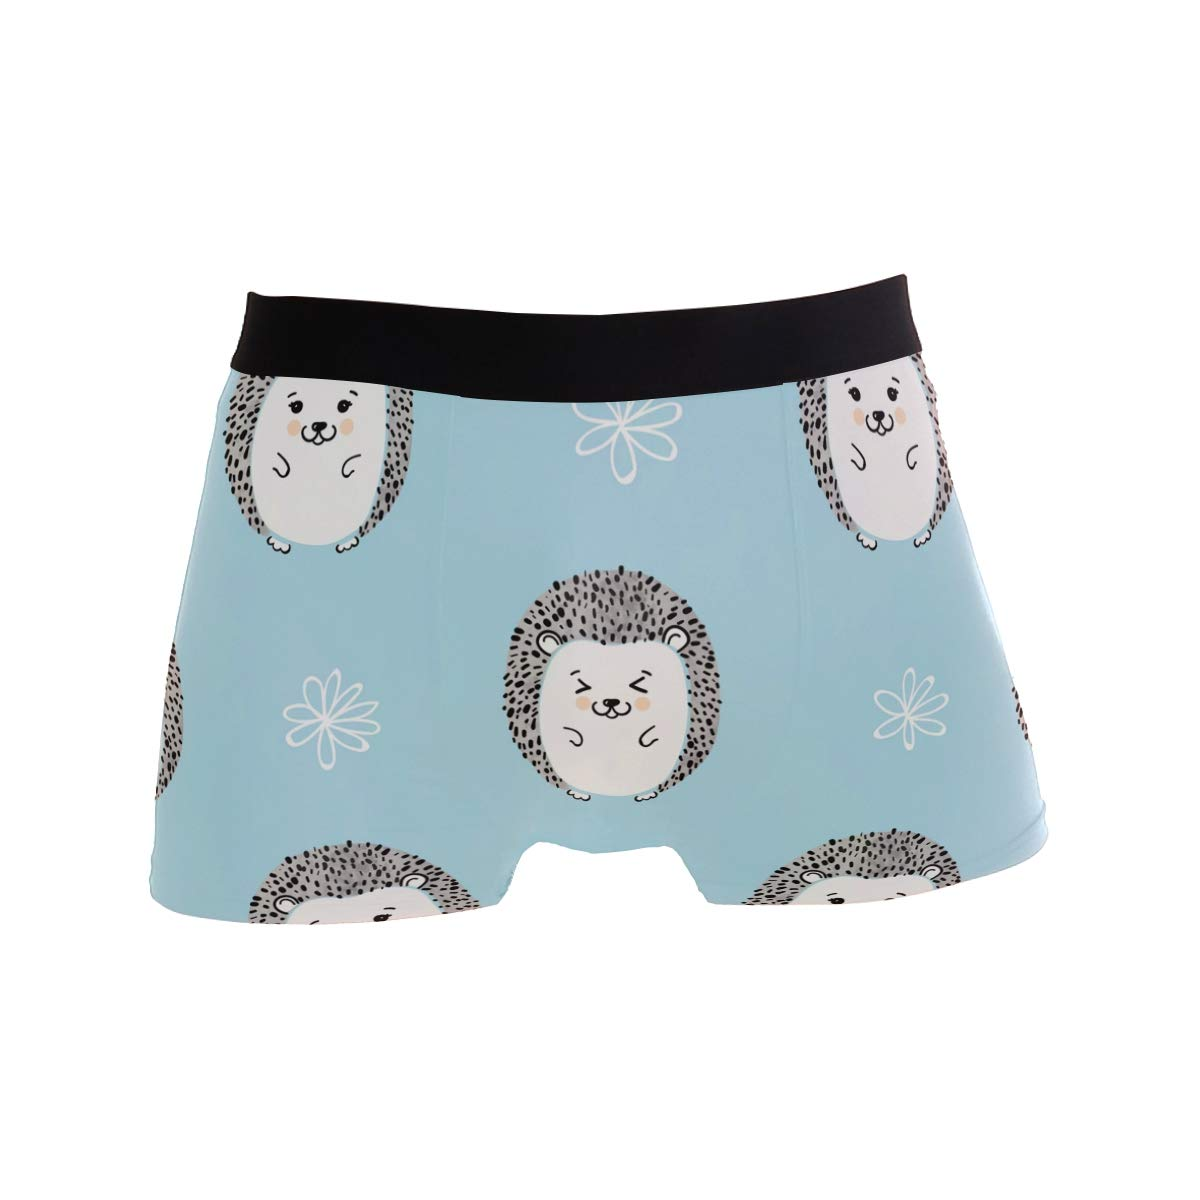 SUABO Men Boxer Briefs Polyester Underwear Men 2 Pack Boxer Briefs for Valentines Gift with Cute Hedgehogs Pattern